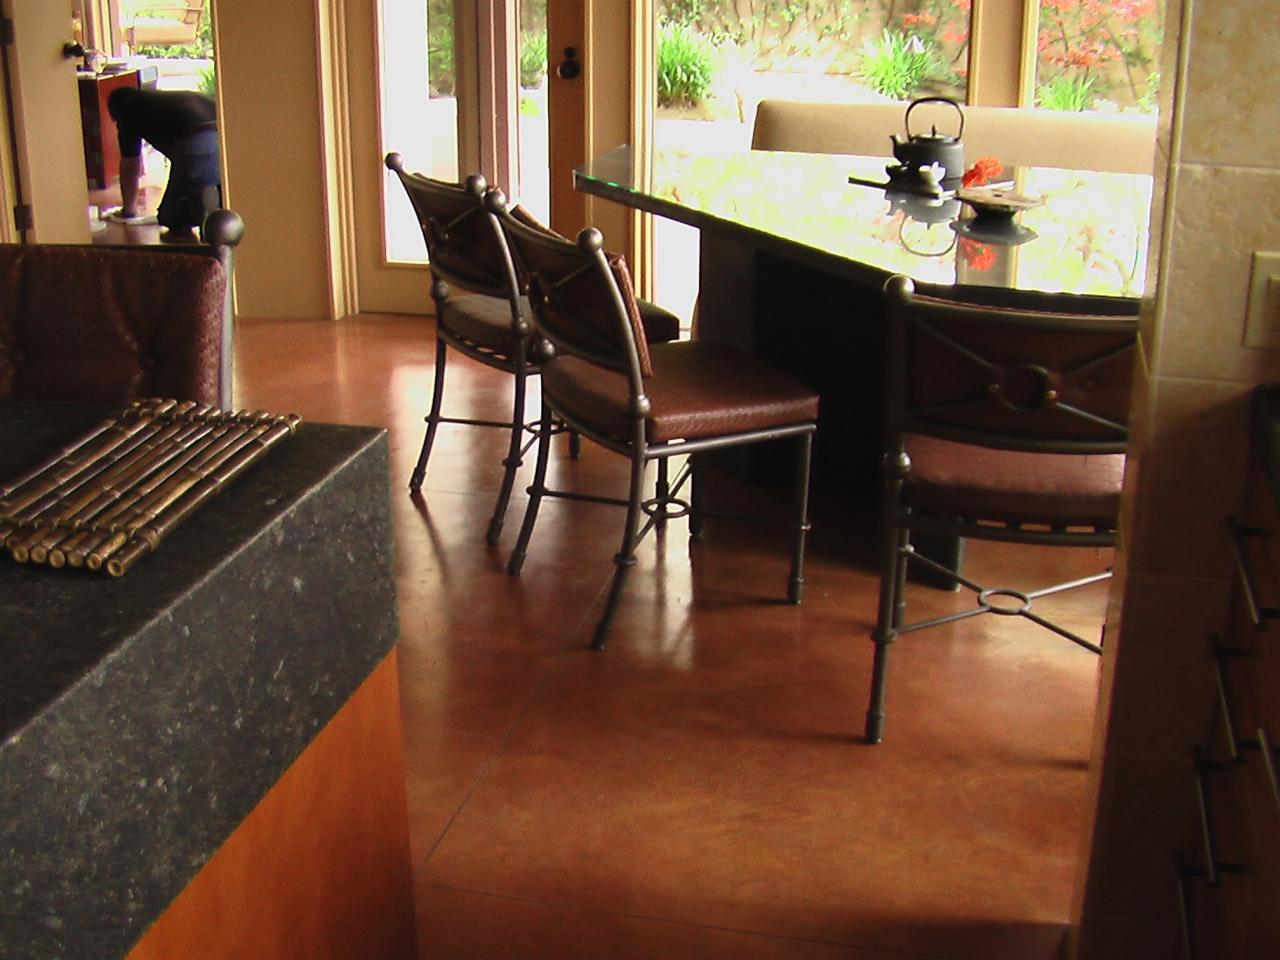 Stained Concrete Floor In Breakfast Nook